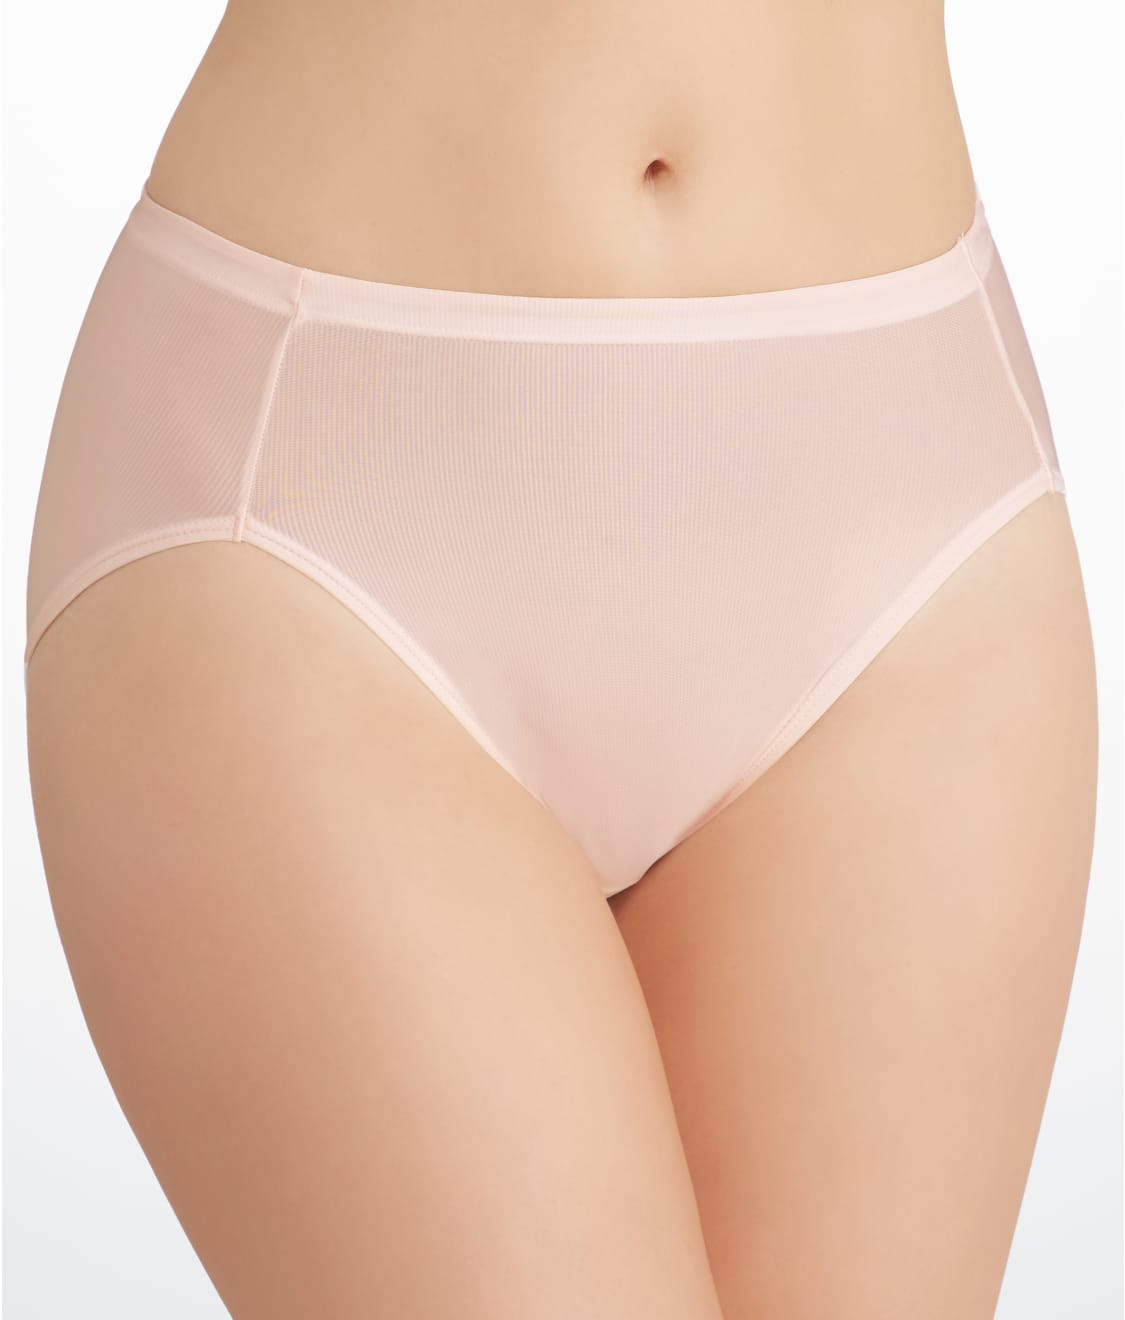 shop vanity fair panties for women | bare necessities